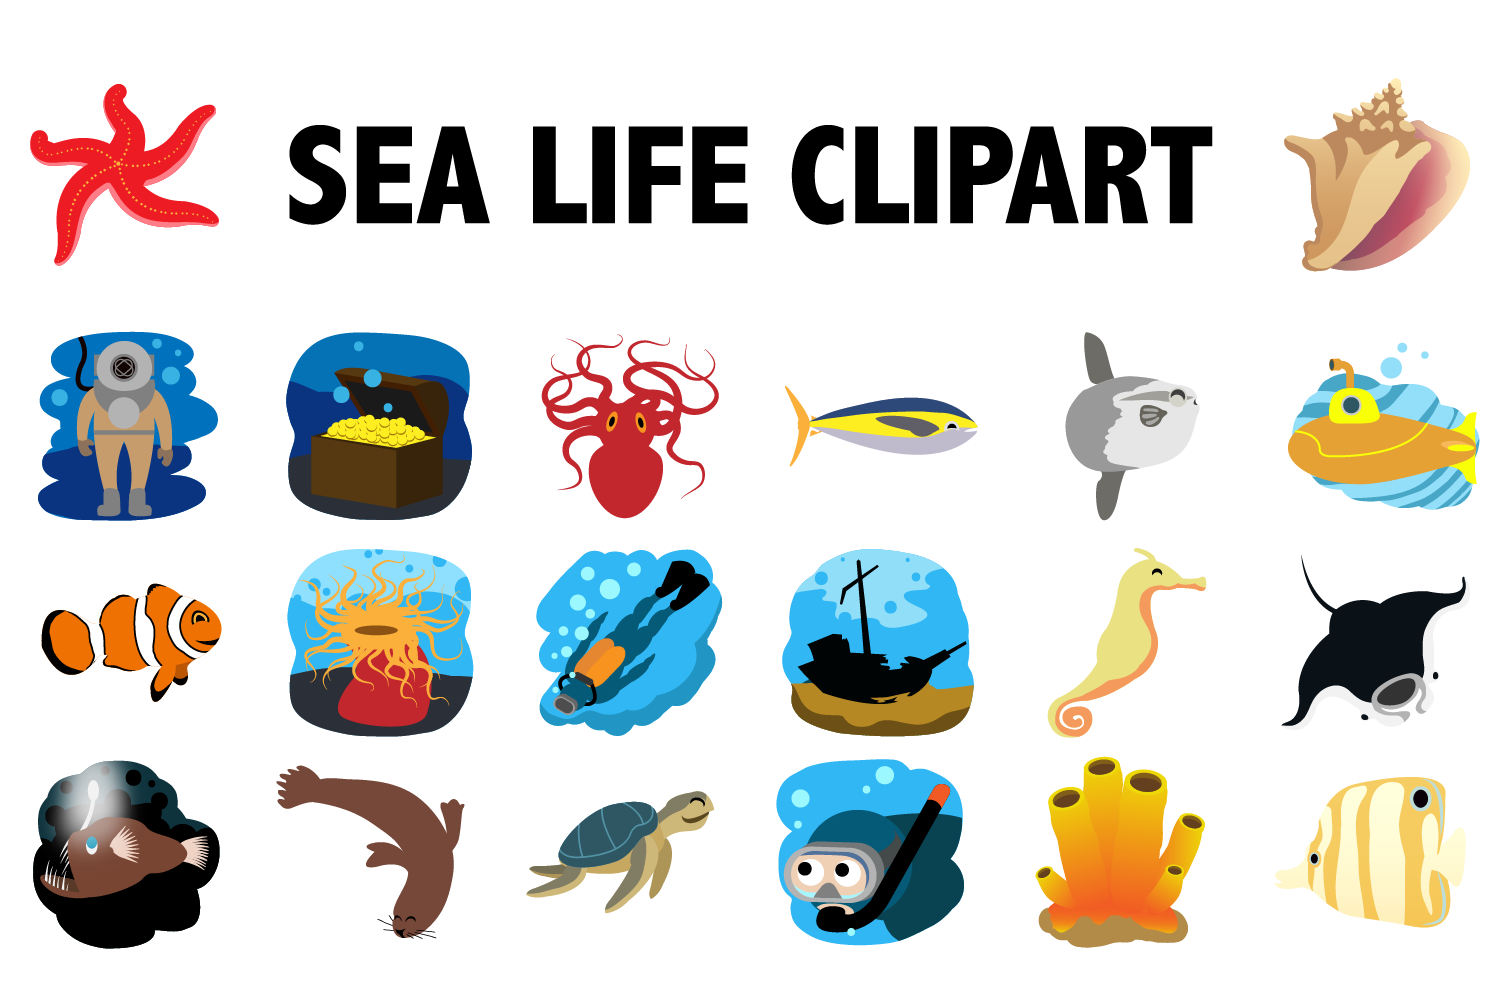 Sea Life Clipart example image 1